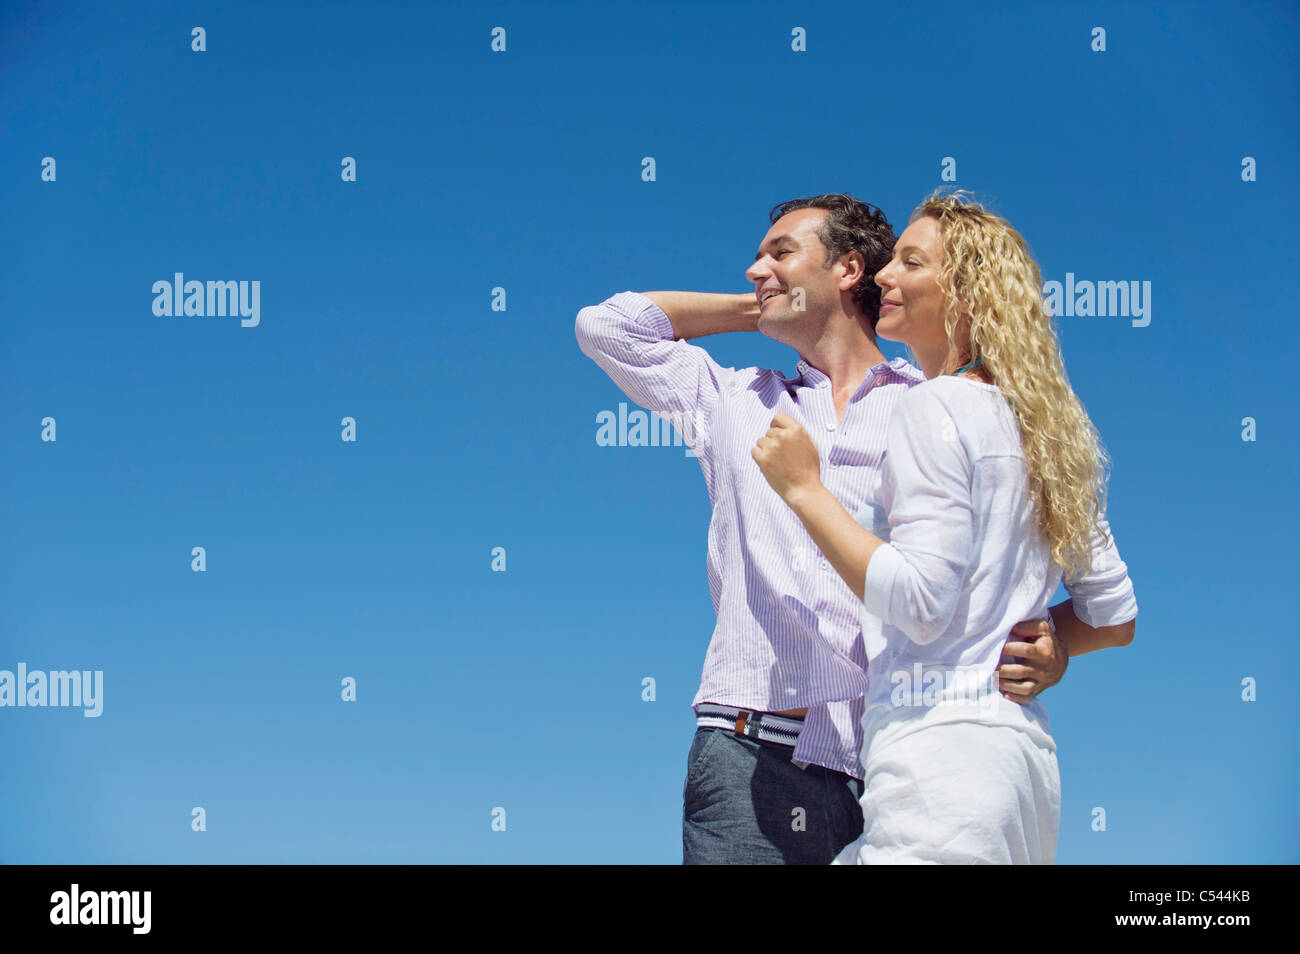 Man standing with his arm around a woman - Stock Image